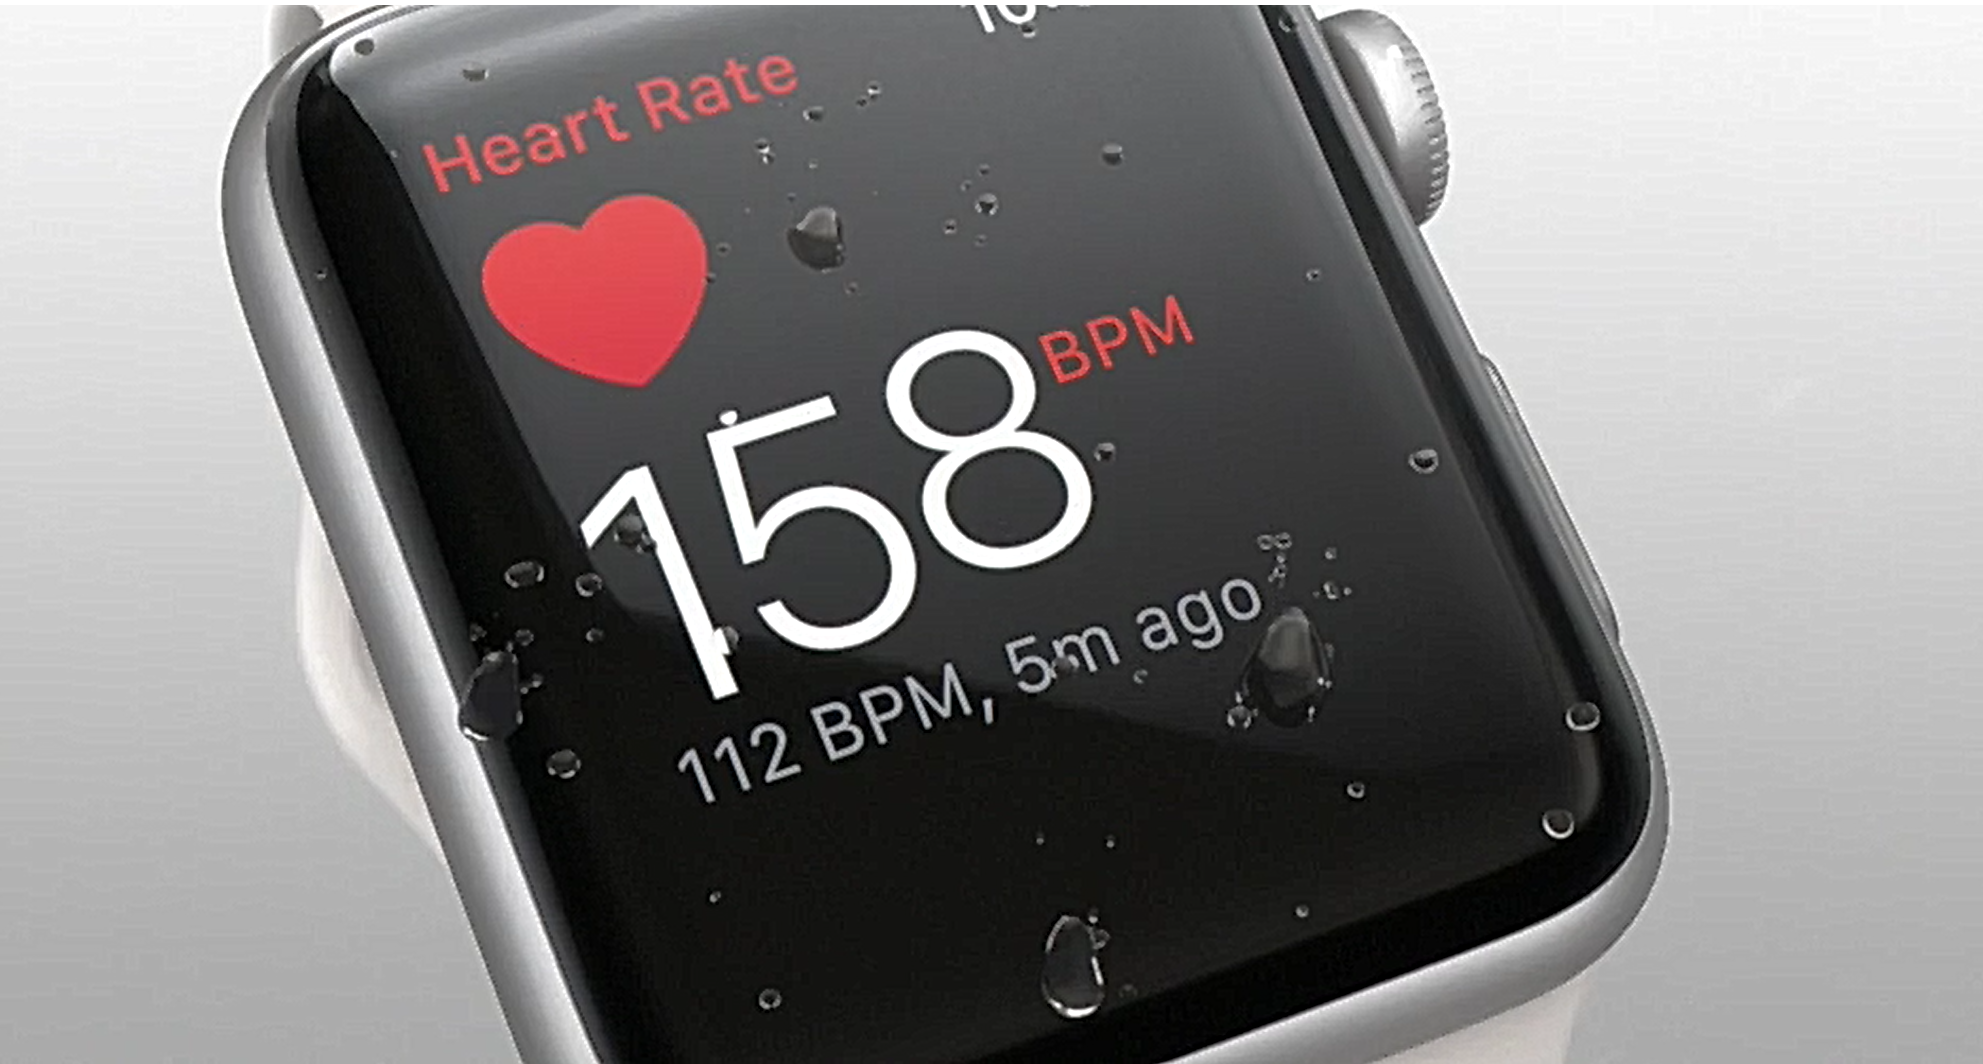 The Apple Watch was the most accurate fitness device